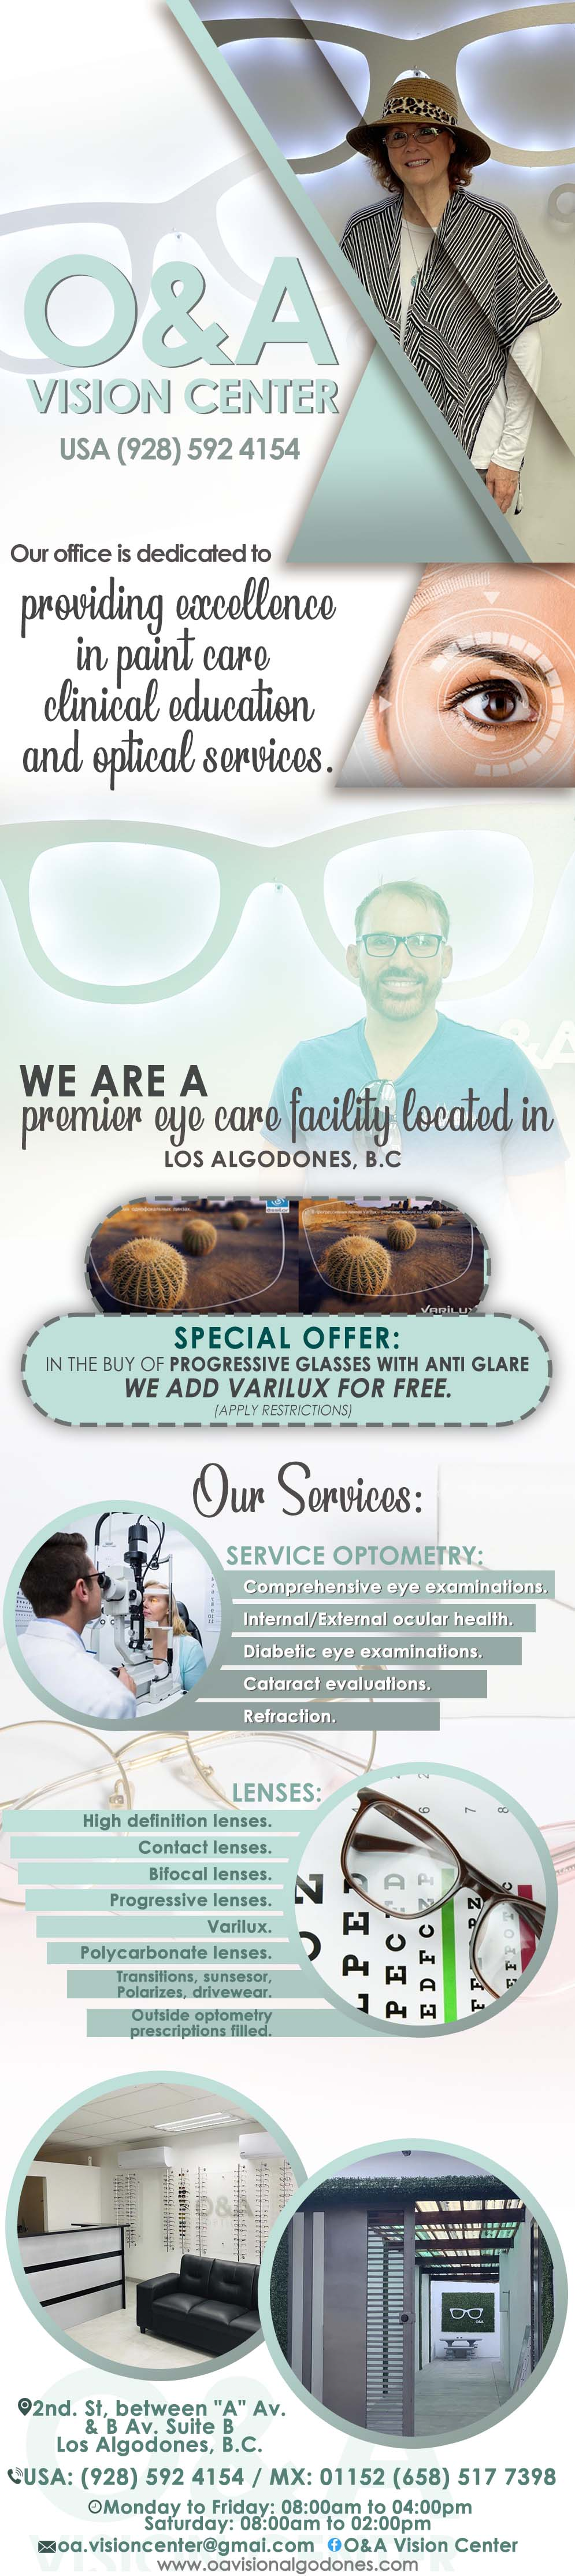 O&A Vision Center in Algodones  in Algodones  Certificated Optometrist                               optical vision eyes lens  Dental bifocal oa oya o&a vision     eye exam varilux progressive eyetest bifocal transition optometrist optometryst antiglare single visión special professional profesional lenses